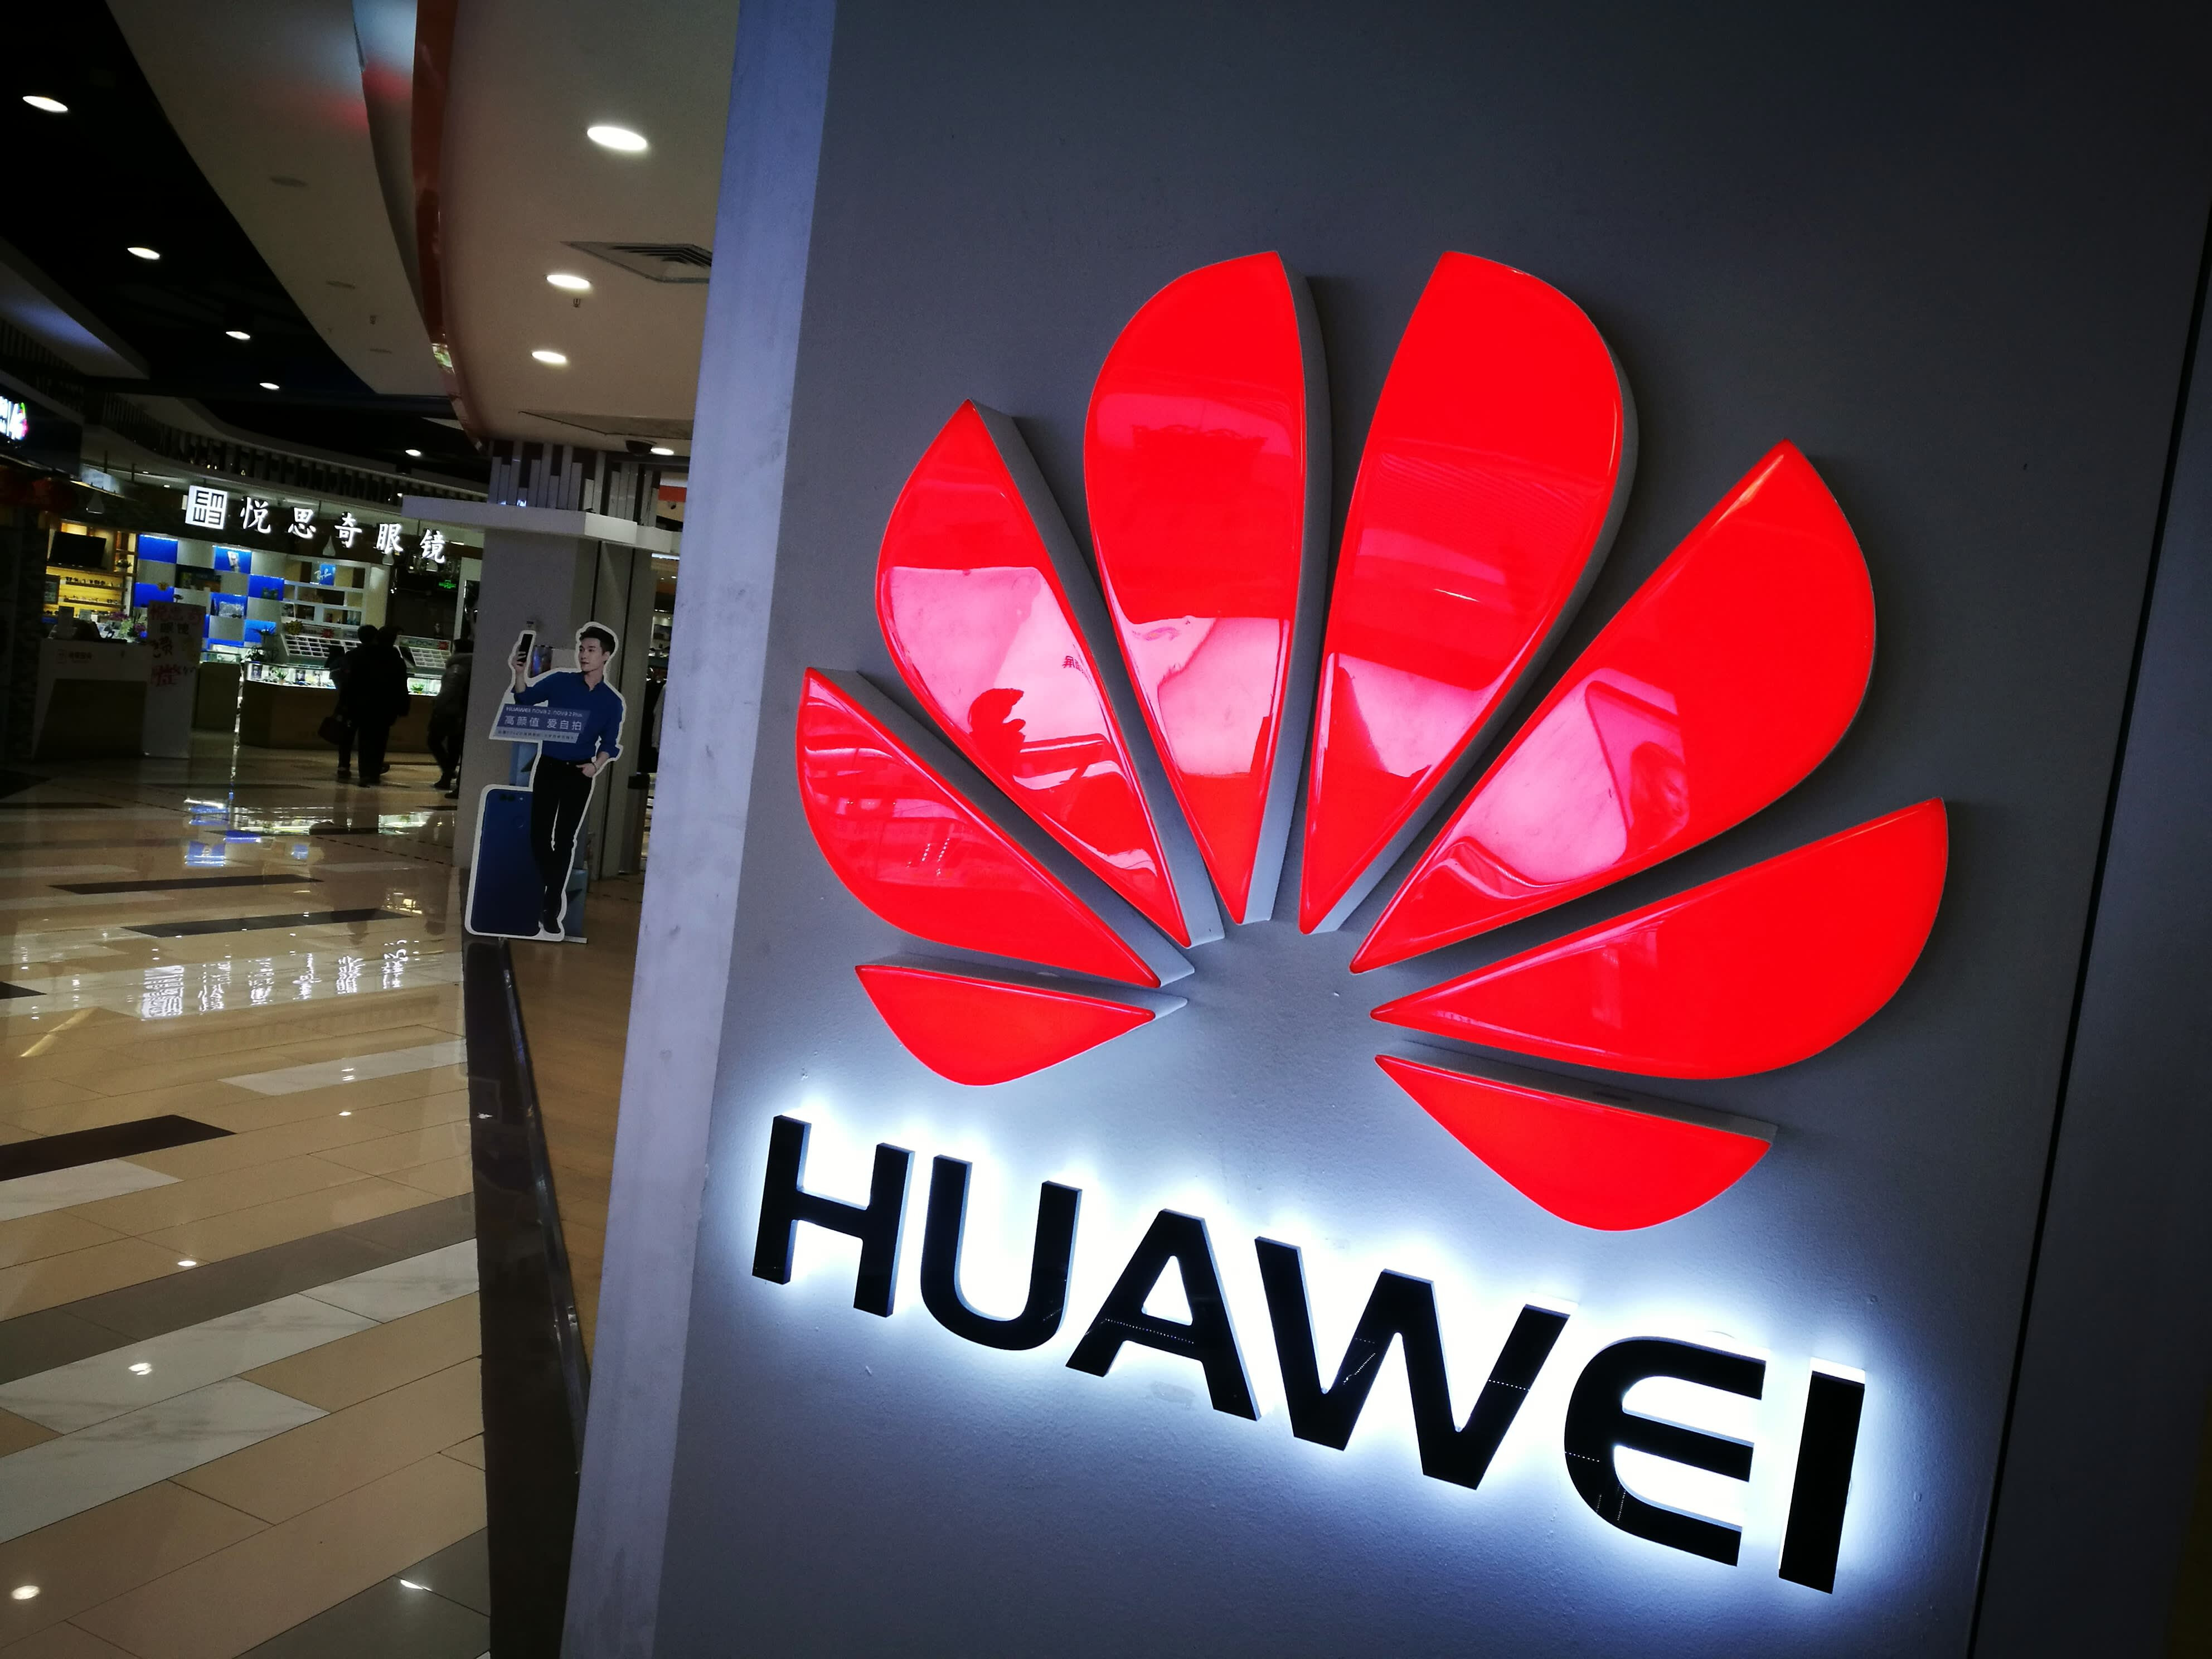 The impact of the USA's Huawei ban on the South African consumer